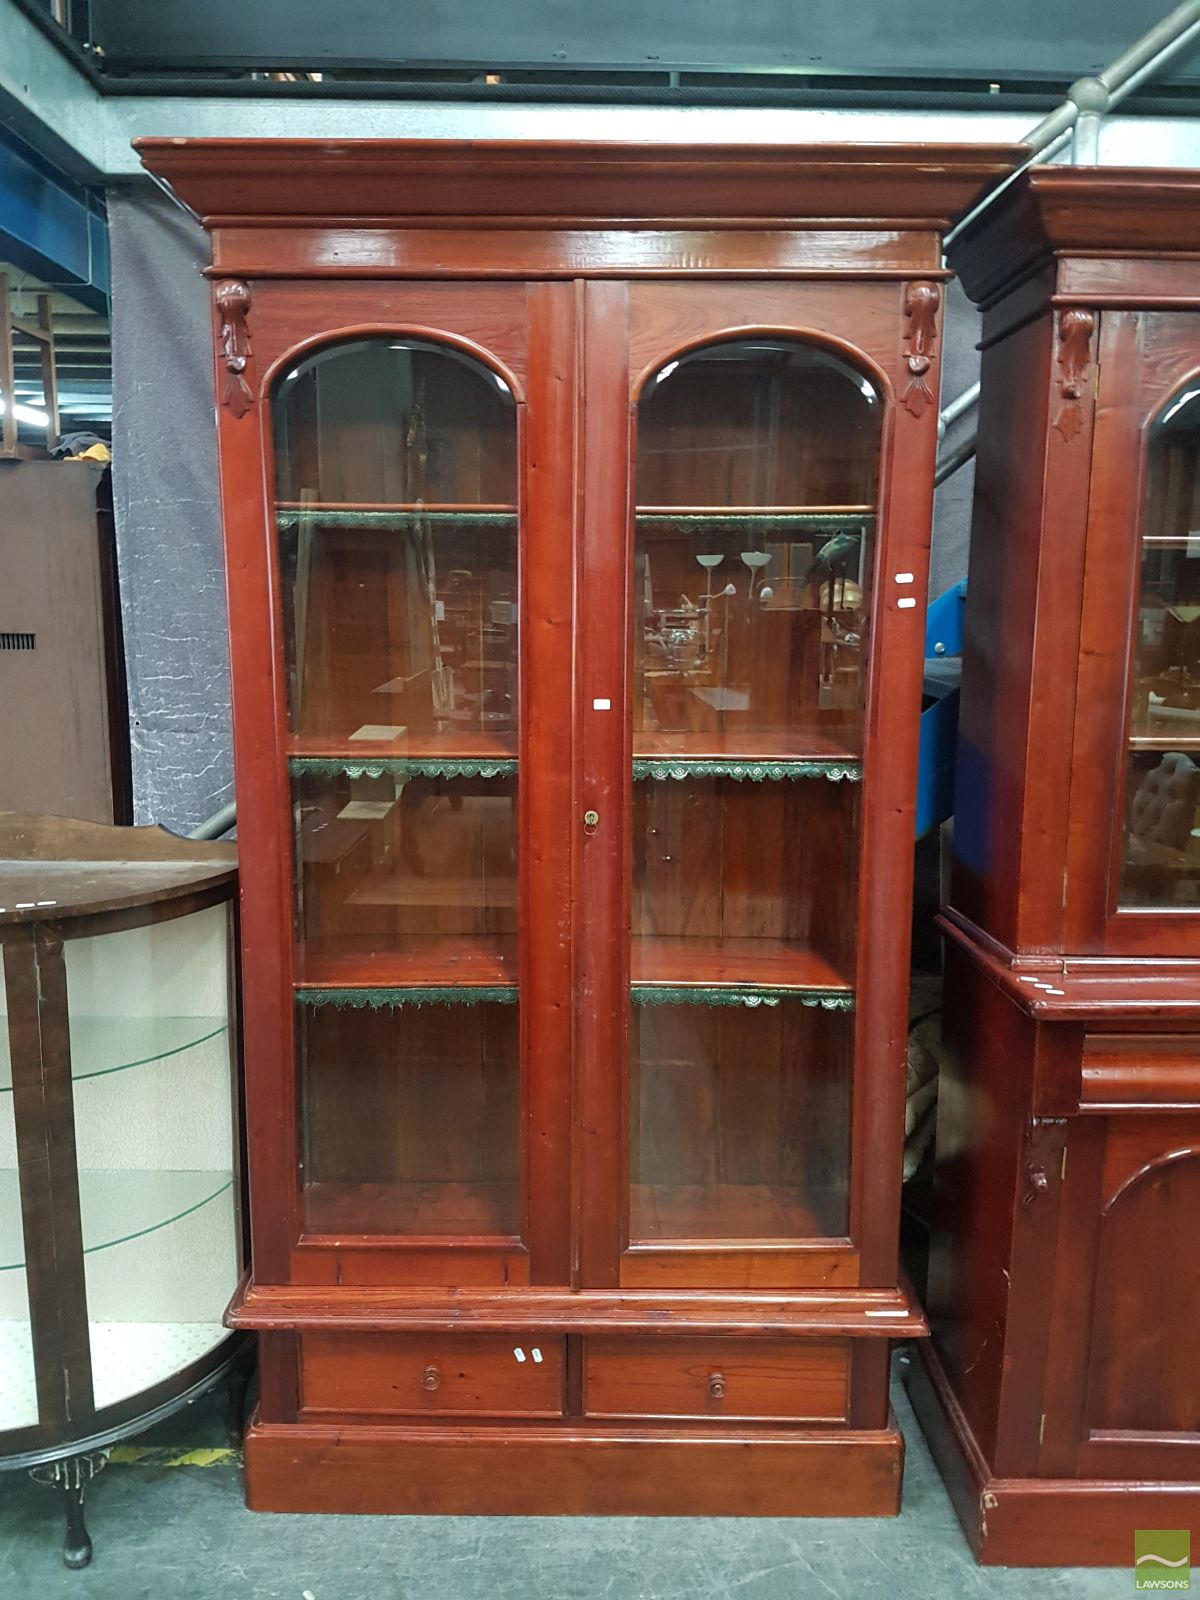 Fine Antique Furniture Followed By General Furniture Interiors Sale 8617 Lot 1264 Lawsons Auctioneers Sydney And Melbourne